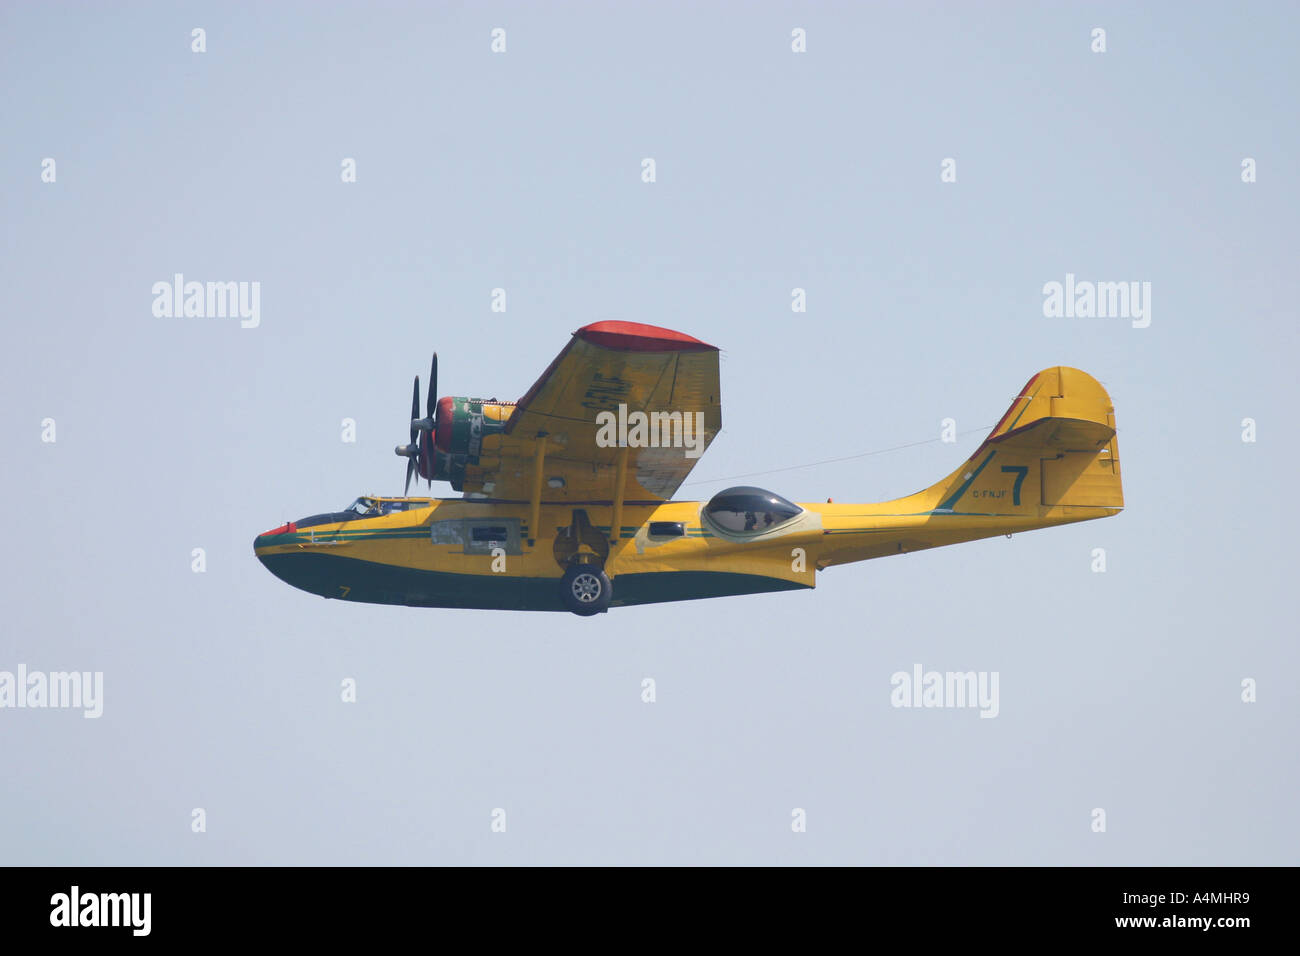 Consolidated Catalina fire bomber - Stock Image